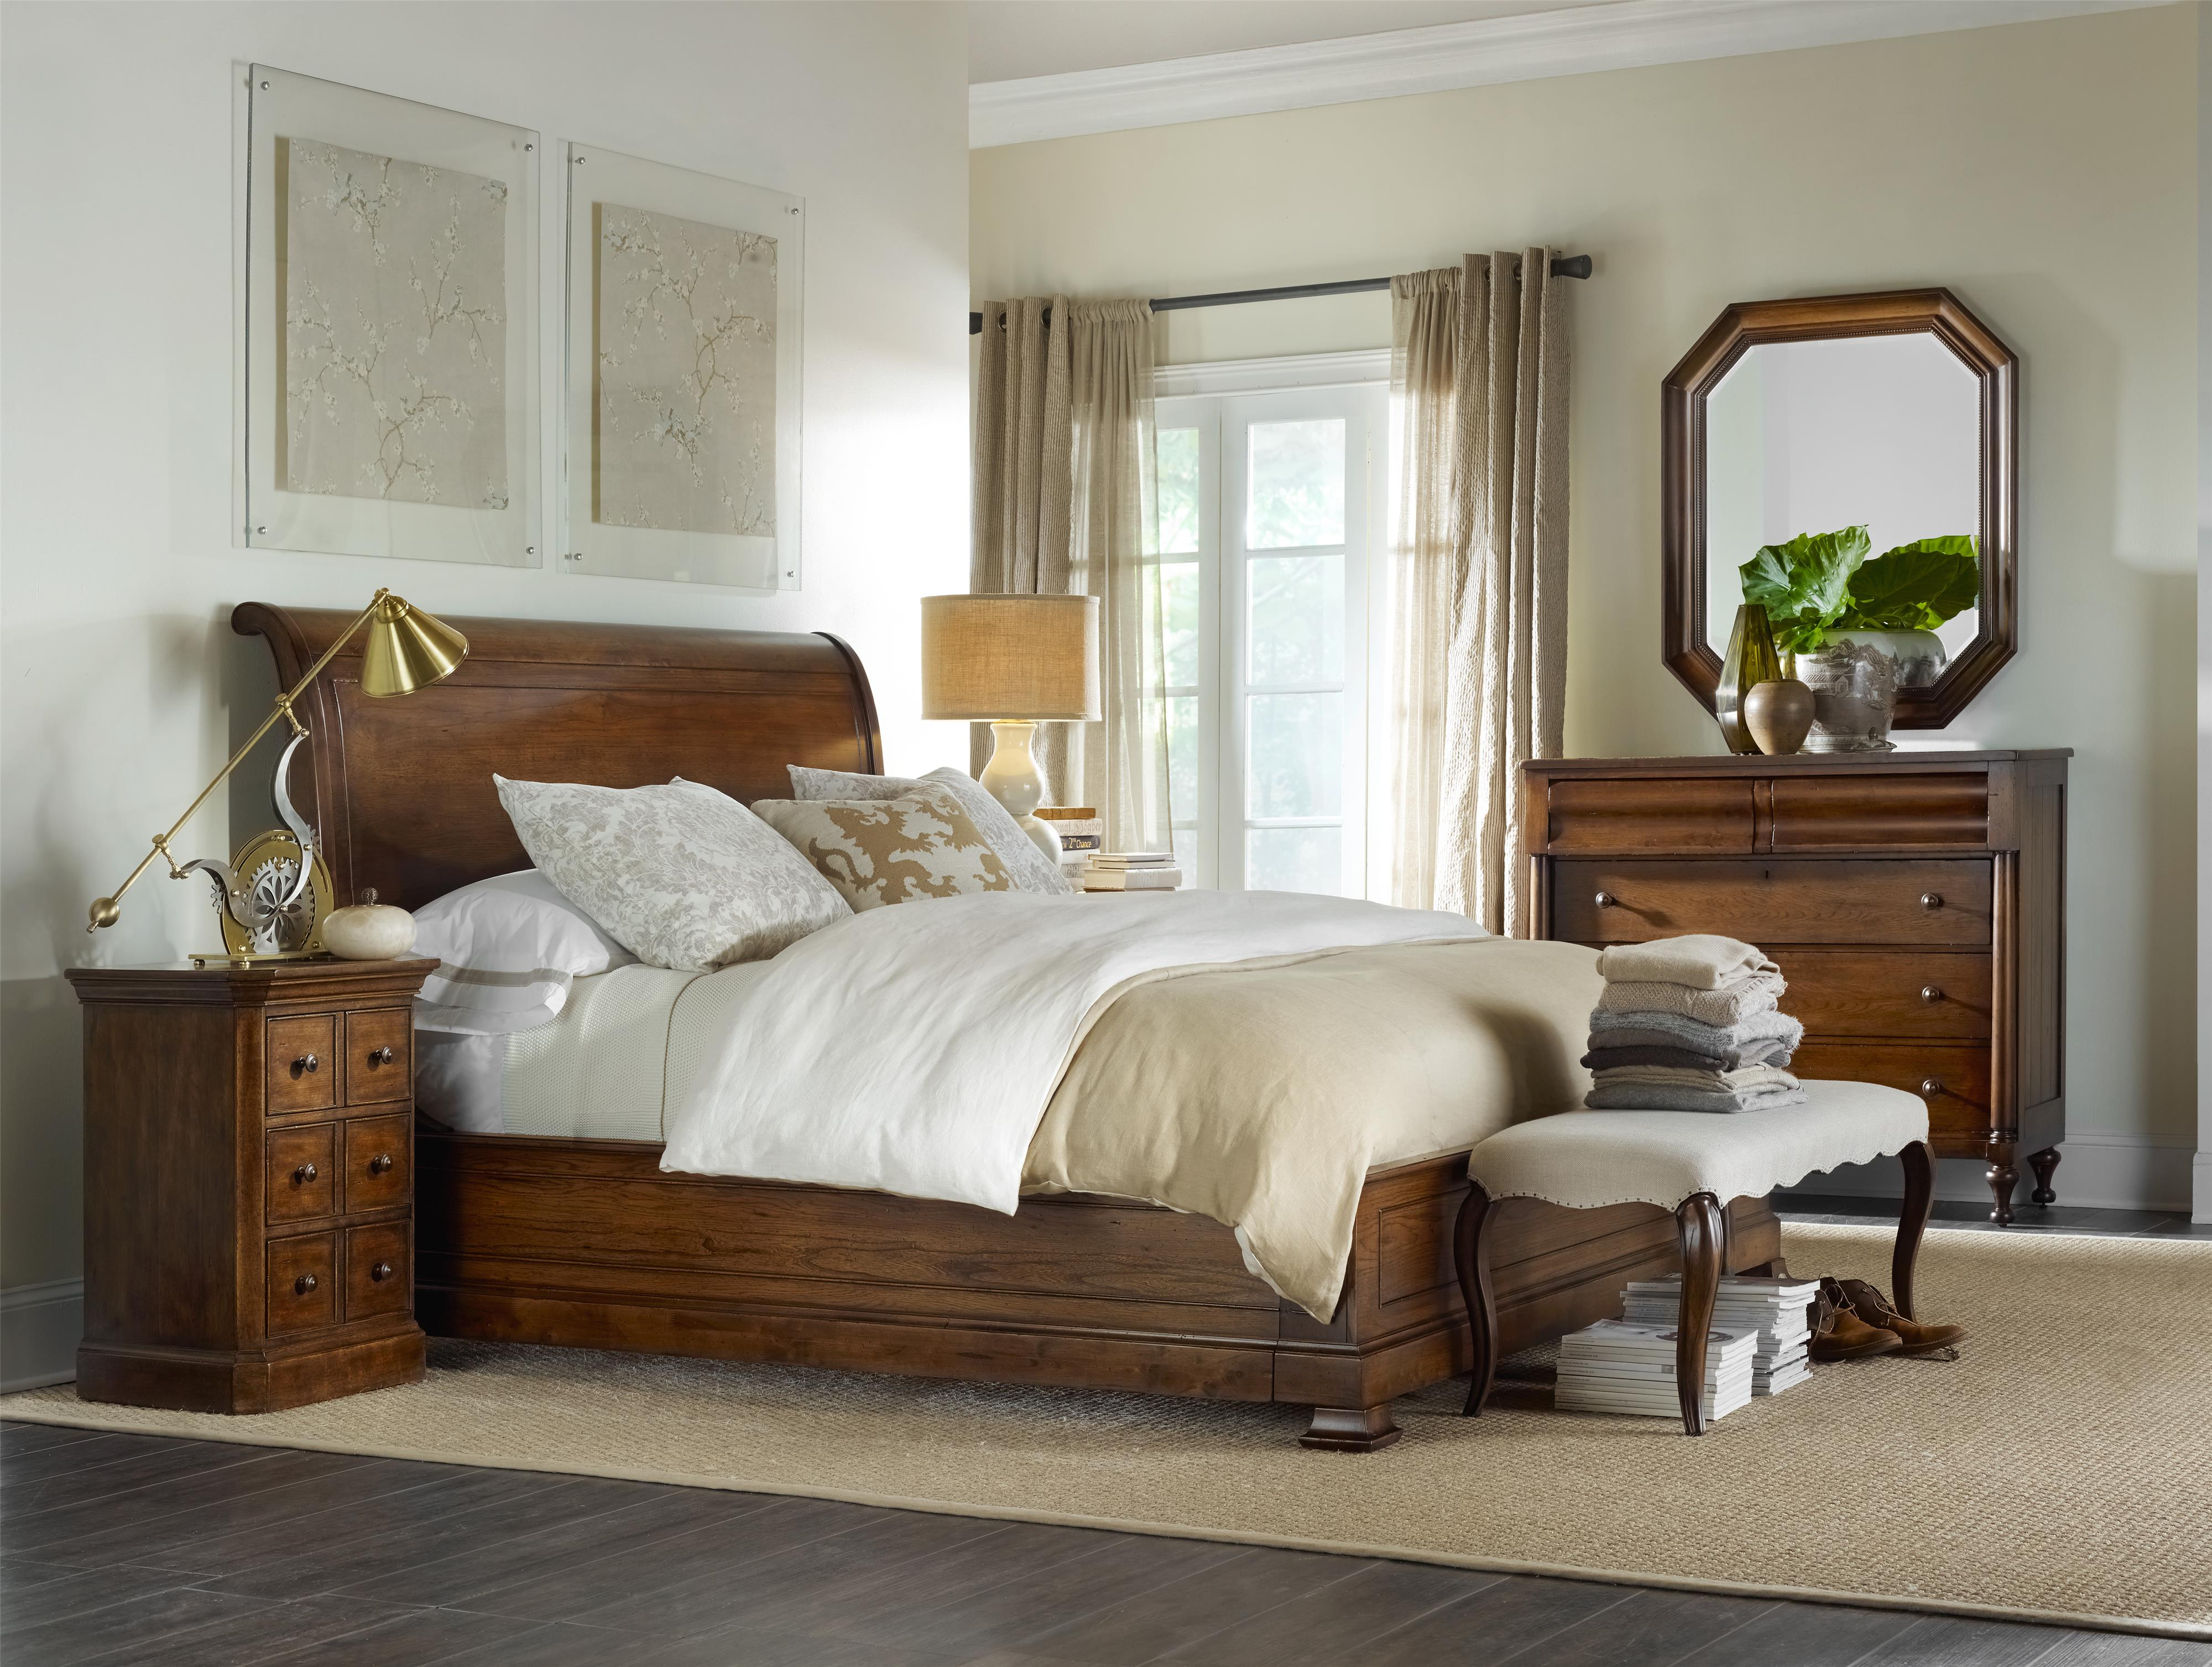 Hamilton Home Sentinel: Pecan Queen Bedroom Group - Item Number: 5447 Q Bedroom Group 1